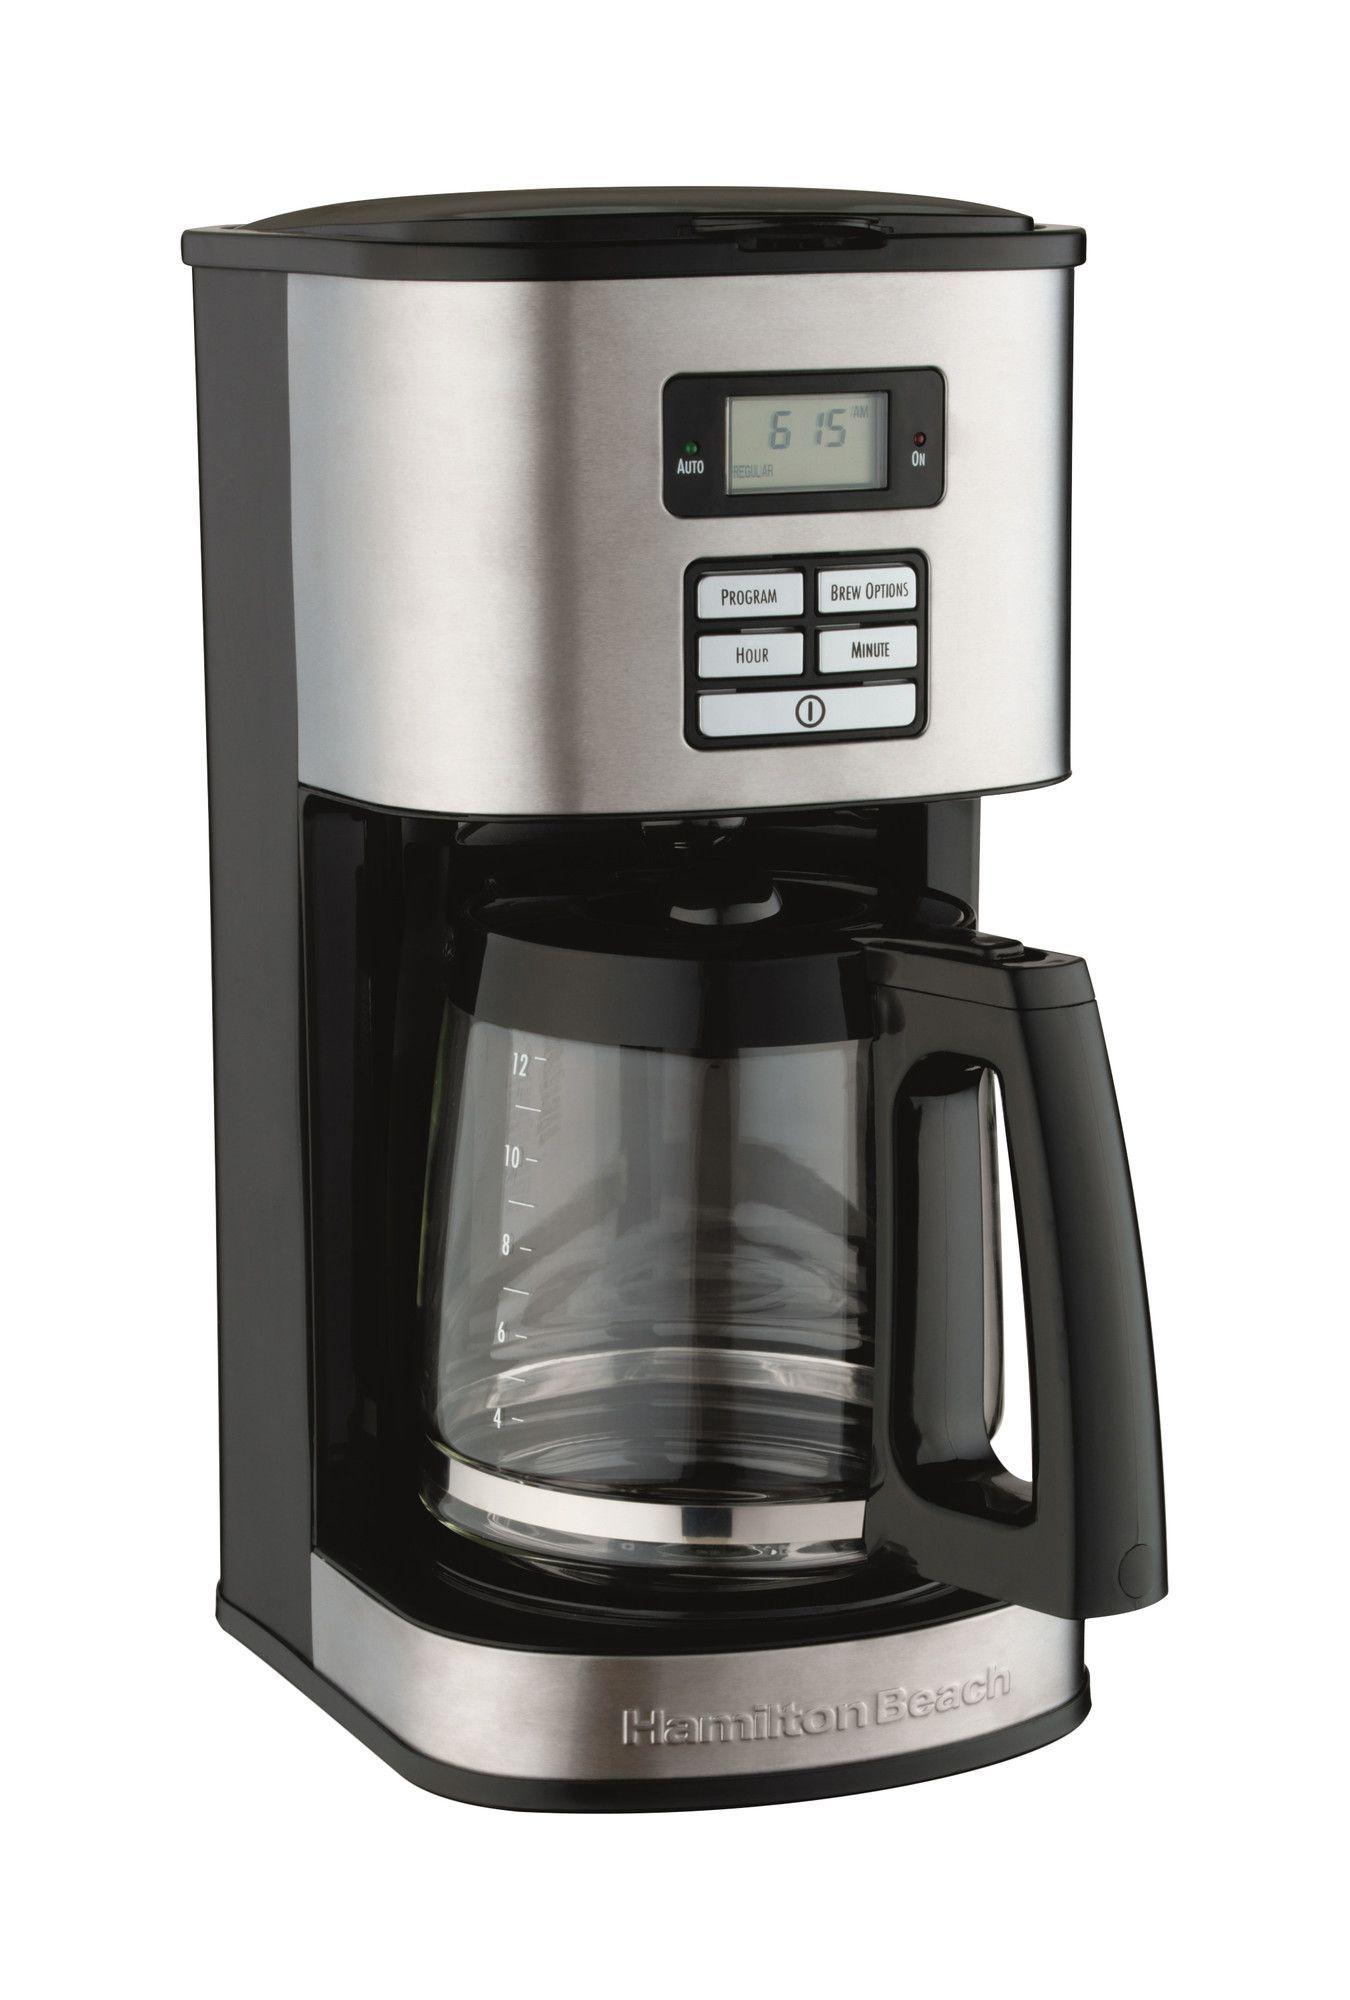 12 Cup Stainless Steel Coffee Maker Stainless steel